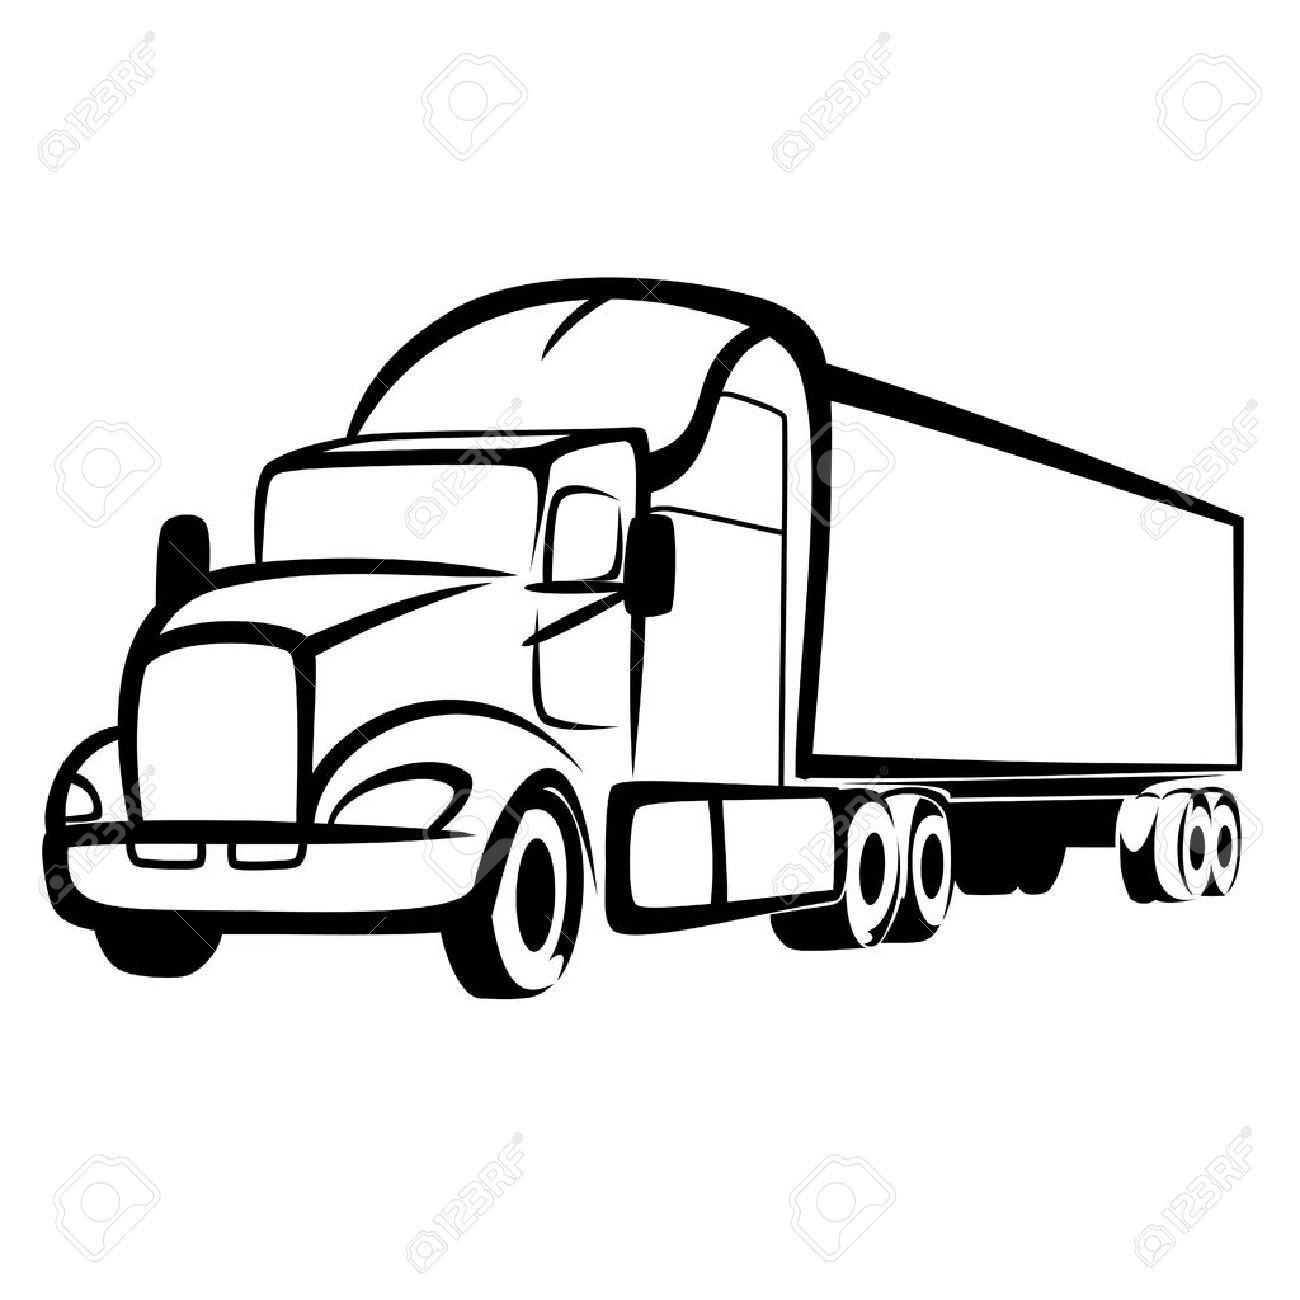 Semi truck clipart free 5 » Clipart Station.